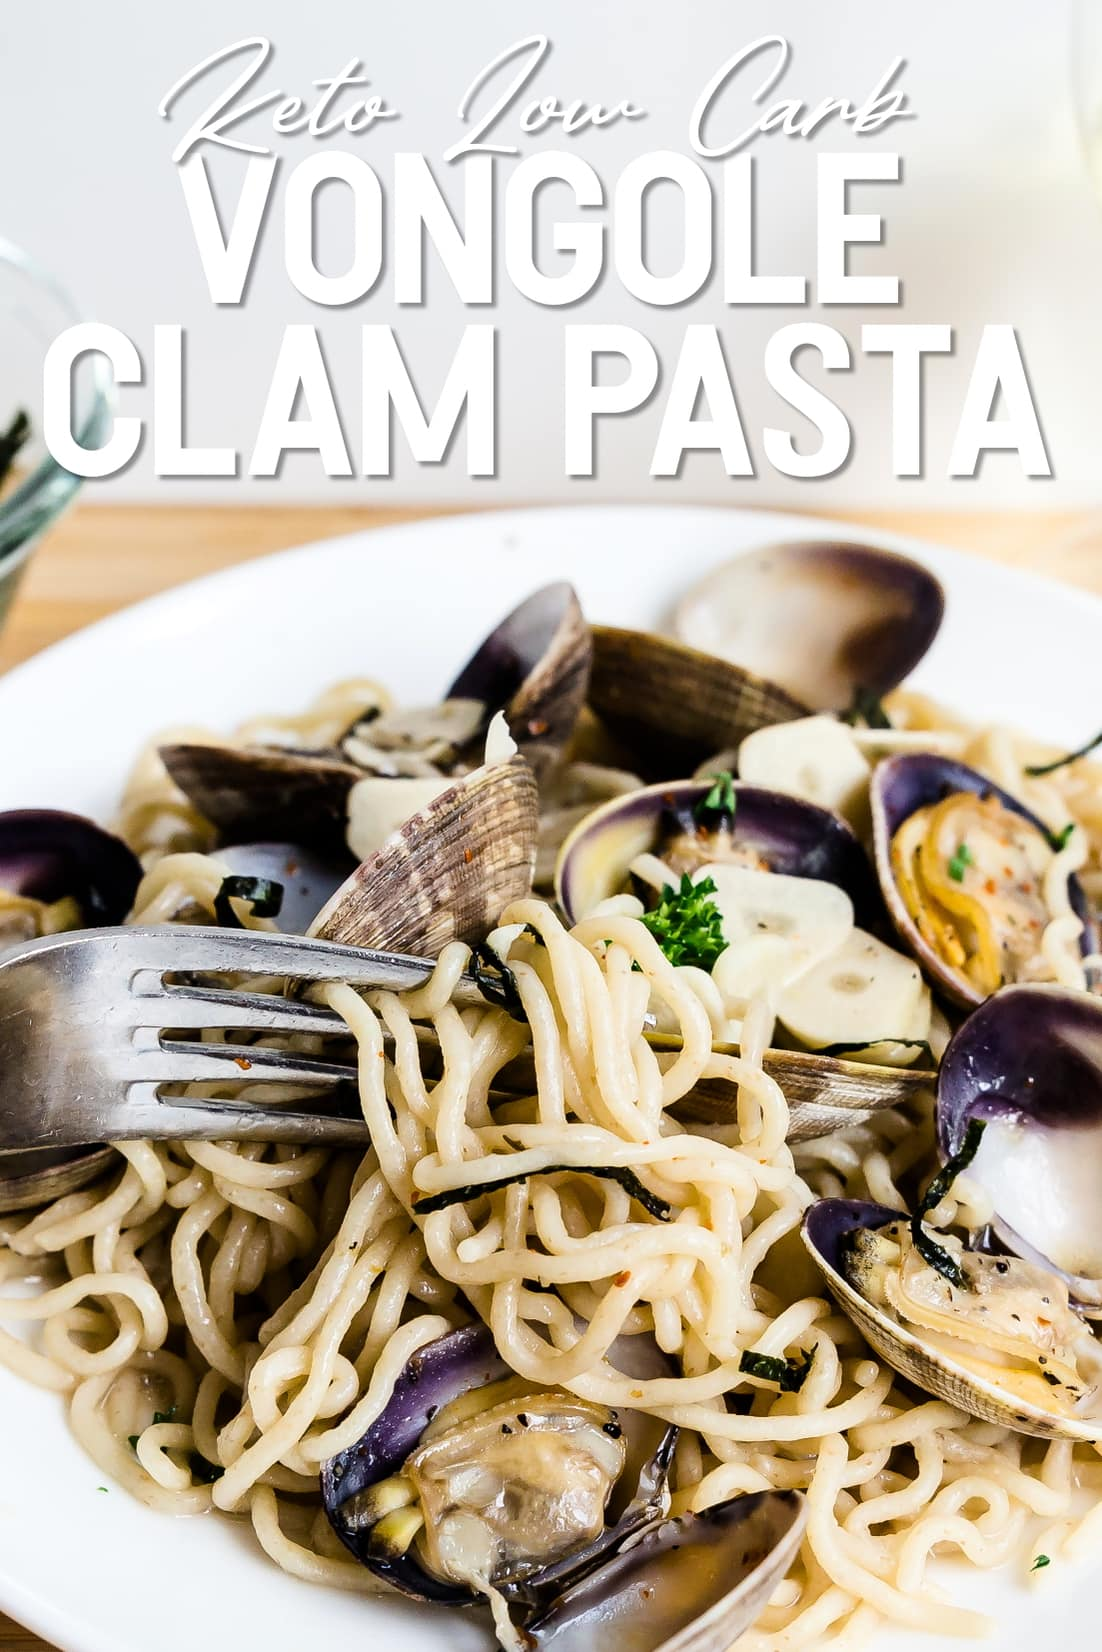 Keto Vongole Clam Pasta being picked up by a fork